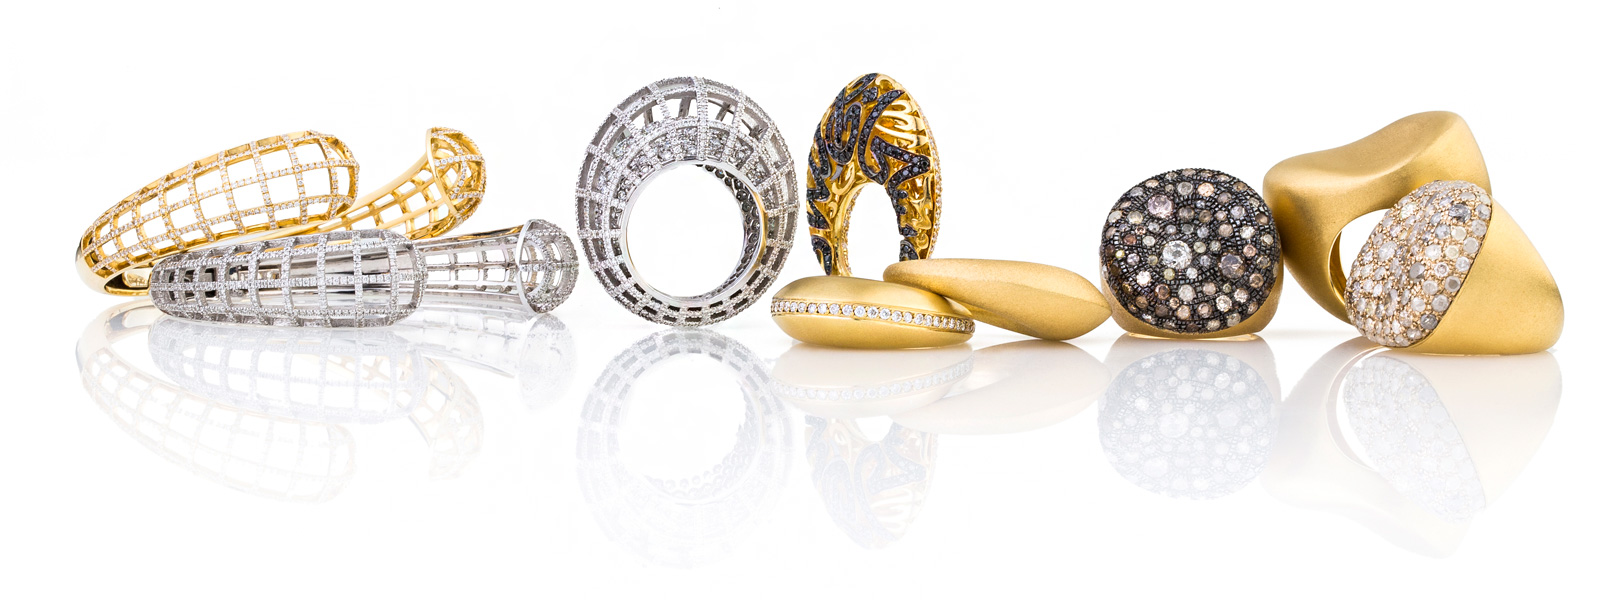 Nada G rings and bracelets in yellow and white gold with diamonds